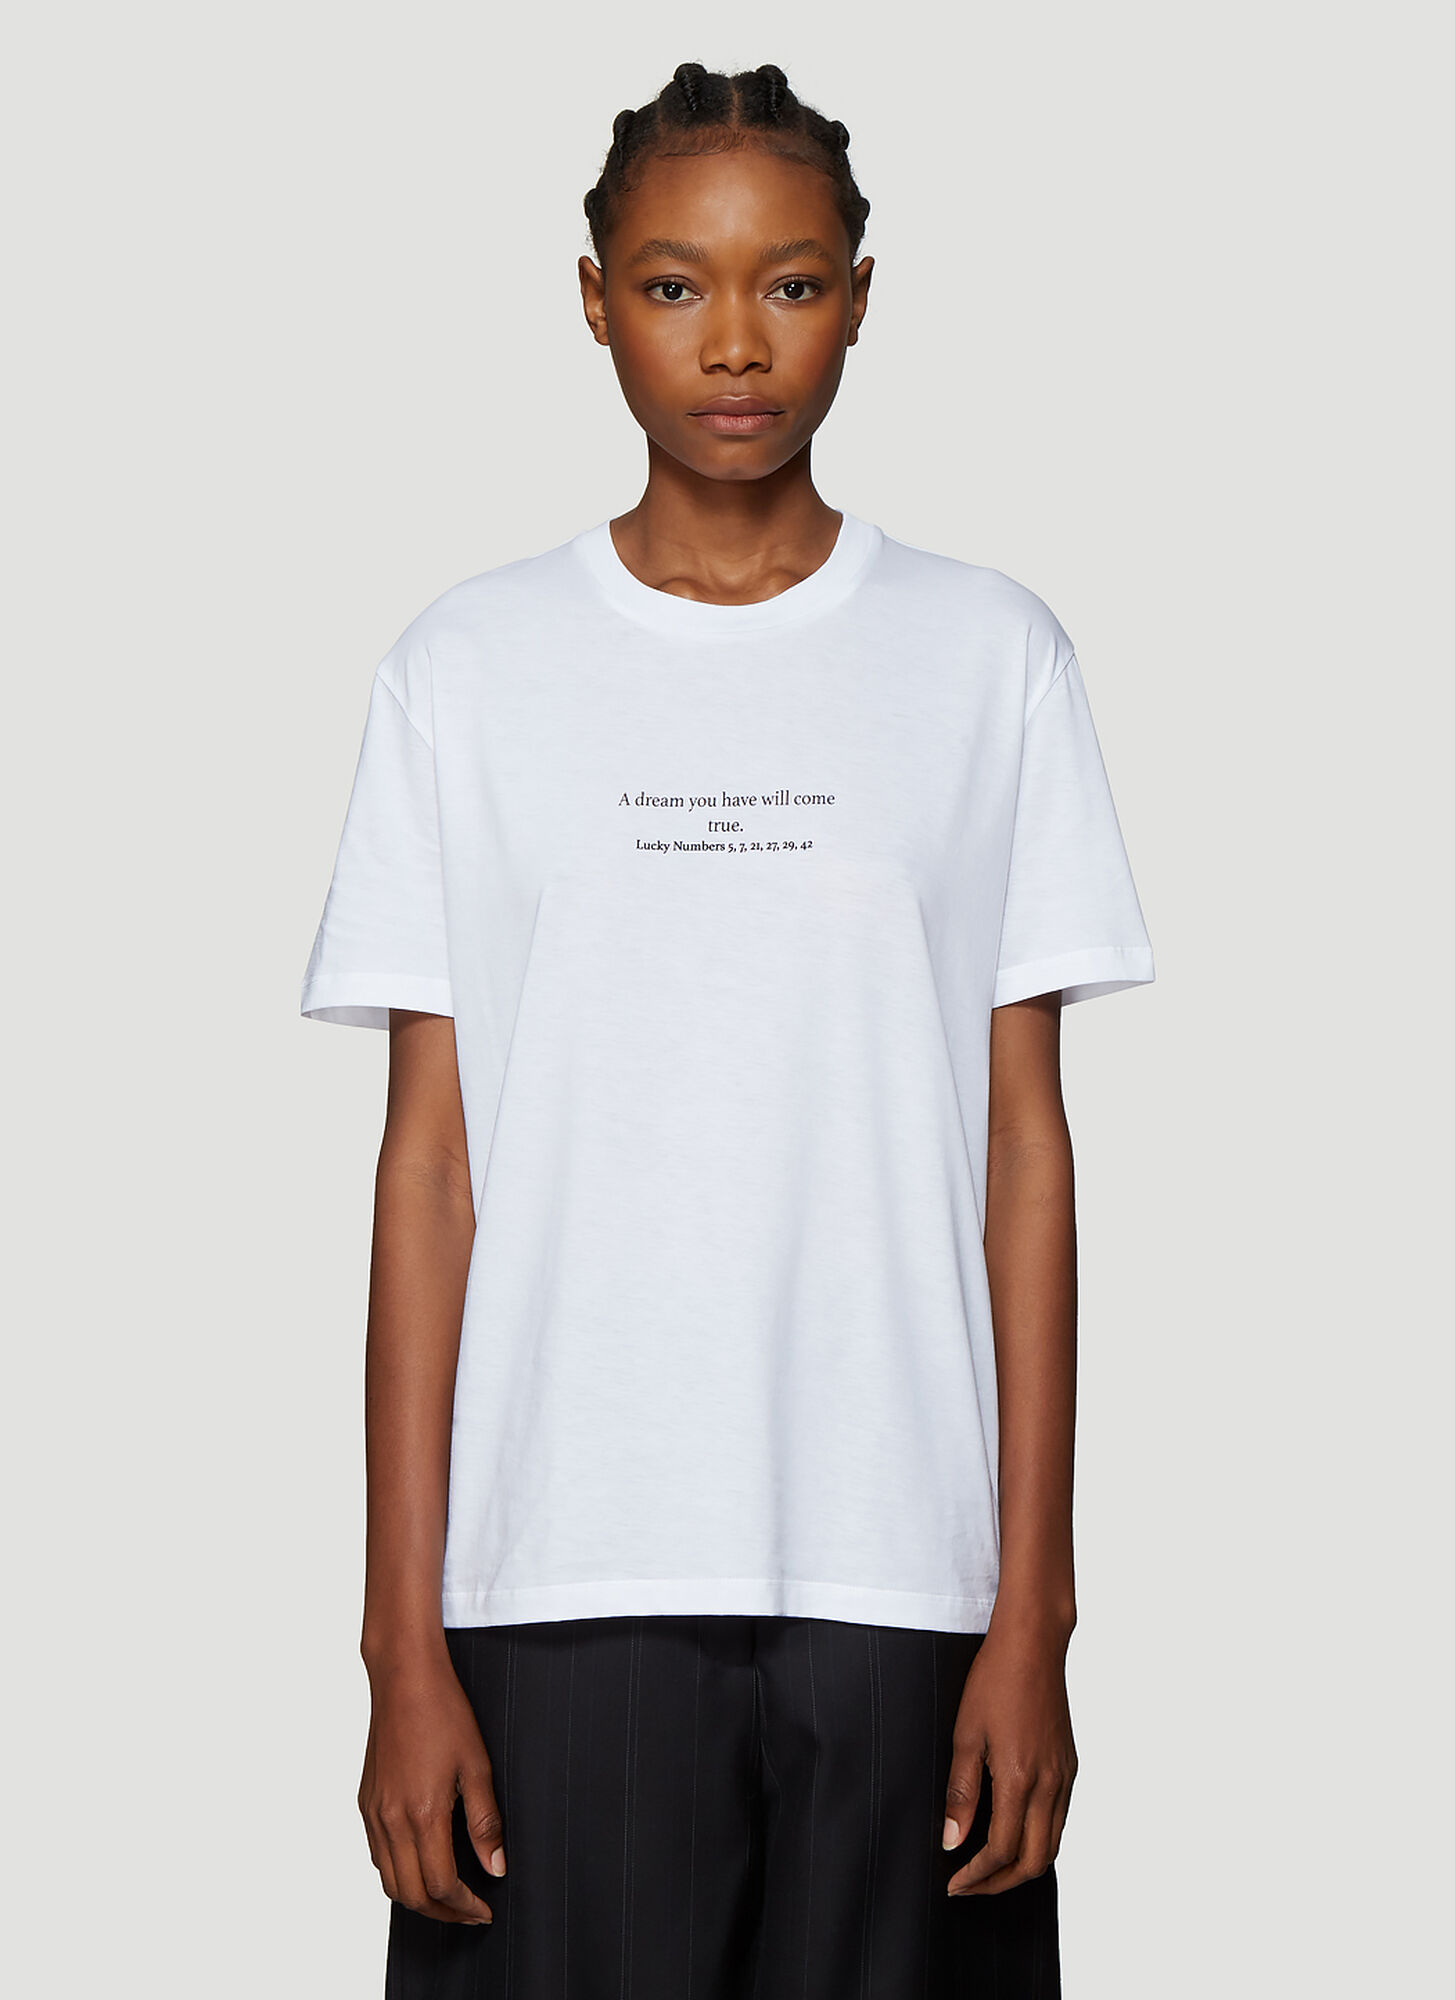 Stella McCartney Fortune Cookie T-shirt in White